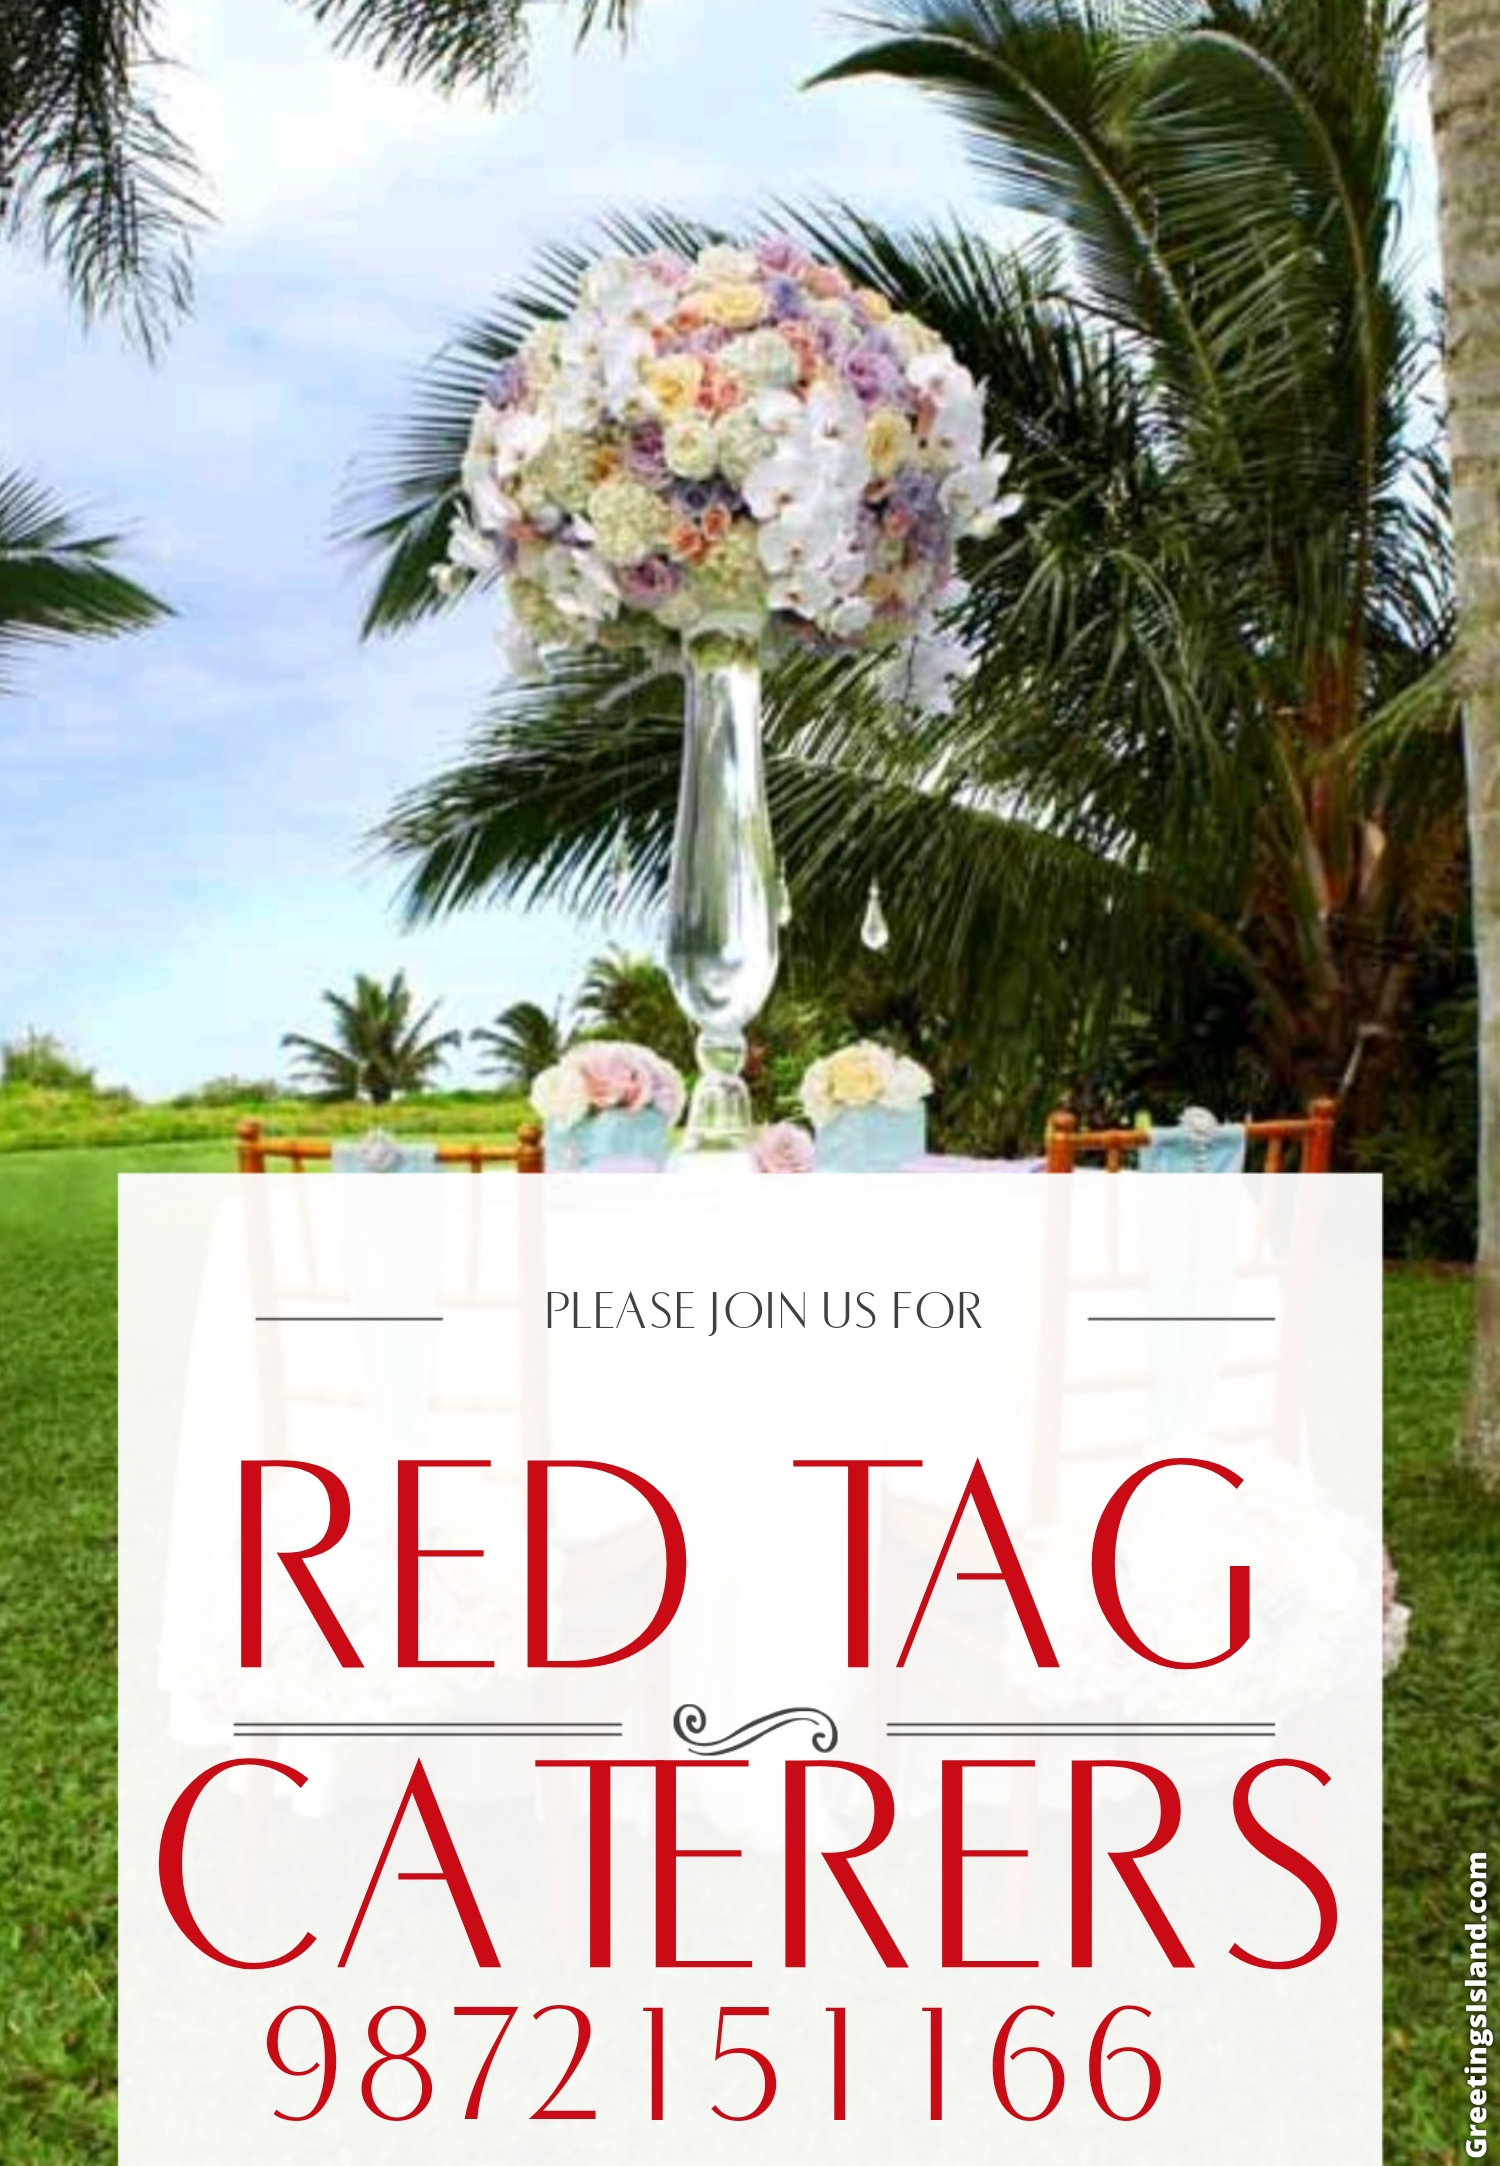 Red Tag Caterers, Top caterers in Chandigarh, wedding catering service in Chandigarh, luxury caterers in Chandigarh, affordable catering service in Chandigarh, party caterer in Chandigarh